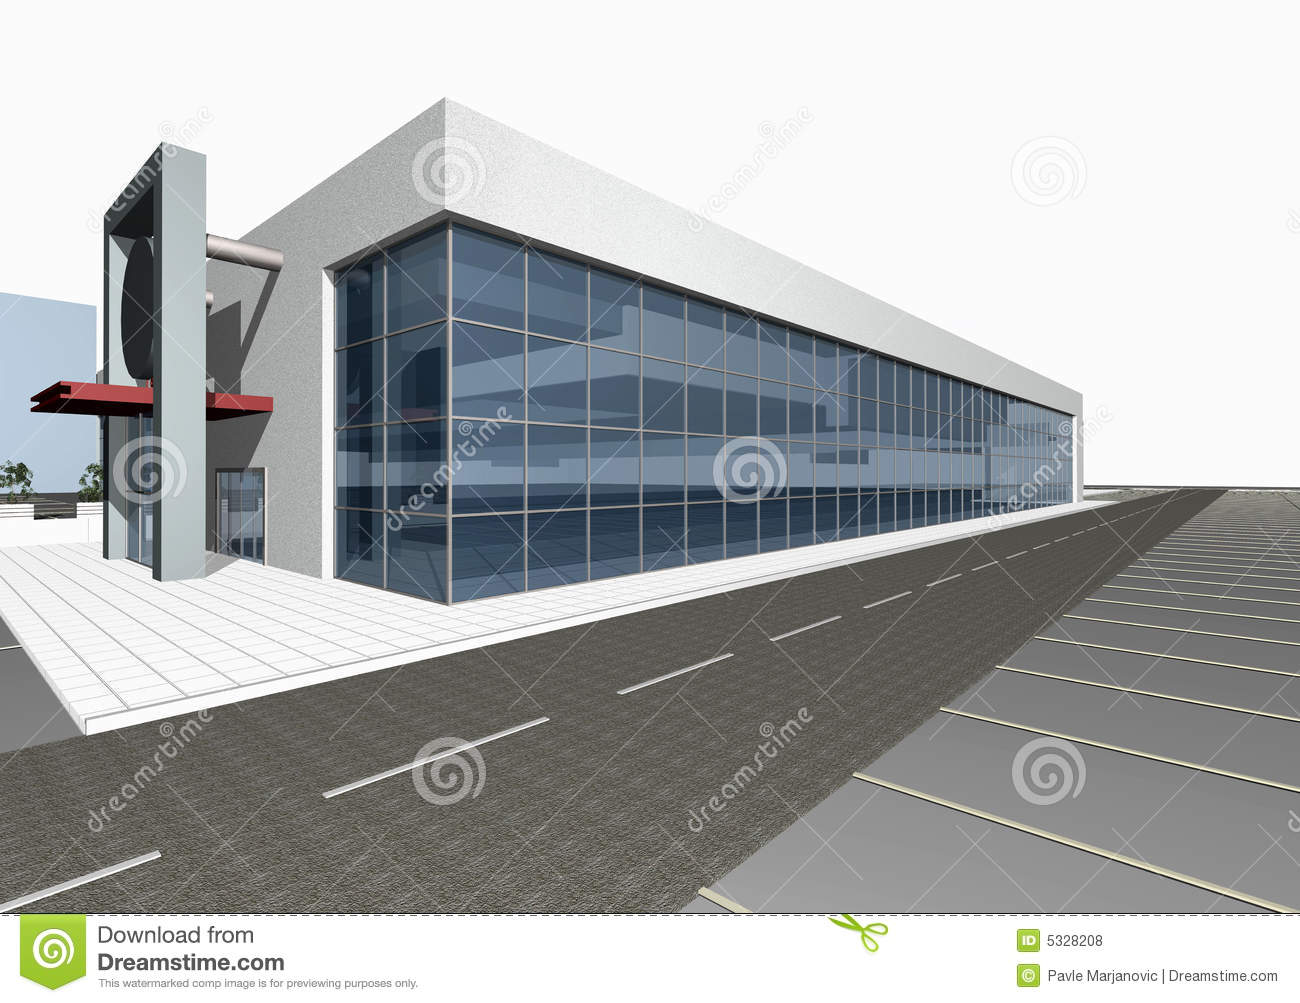 3d exterior design free download with Royalty Free Stock Photos 3d Render Modern Building Image5328208 on 646 as well Royalty Free Stock Photo Patterns Lino Image15013415 likewise Royalty Free Stock Photos 3d Render Modern Building Image5328208 as well Royalty Free Stock Photo Small Modern Dressing Room Made Pink Hangers Shelves Image34053565 moreover Royalty Free Stock Photography City Typography Artwork Image14308807.